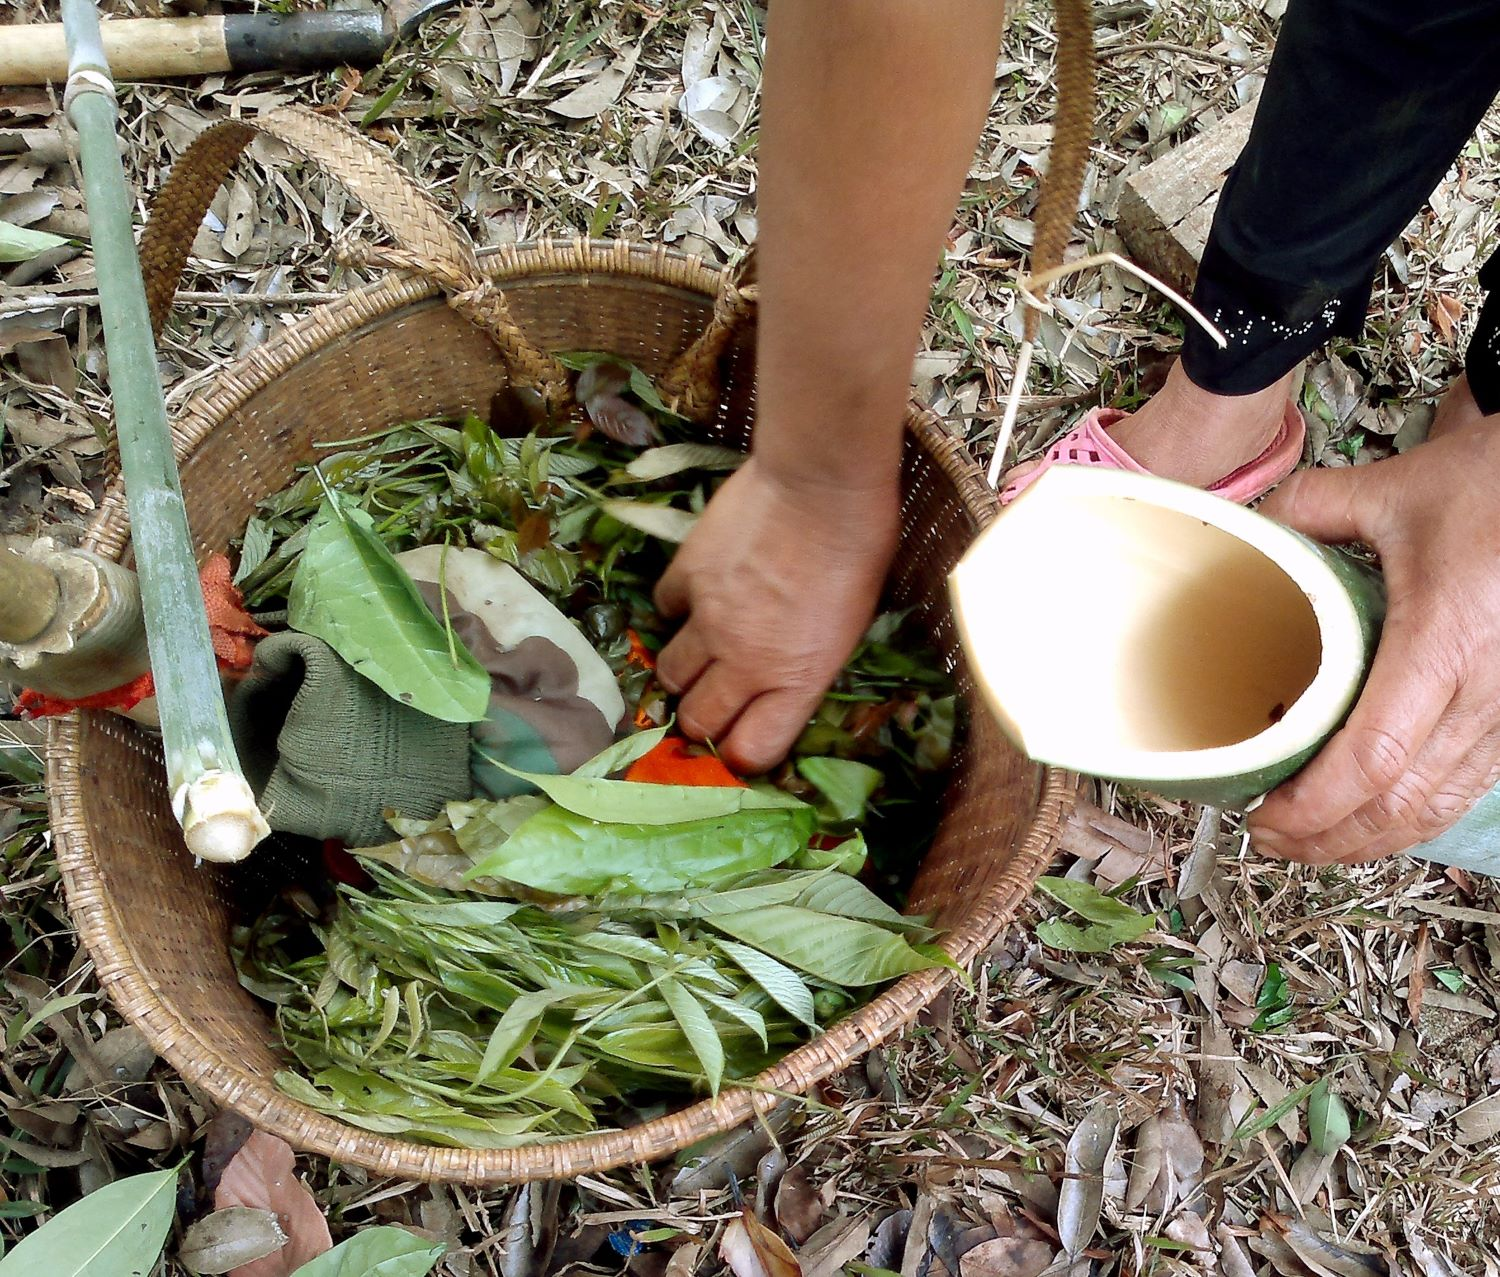 Cooking gnetum leaf soup in bamboo